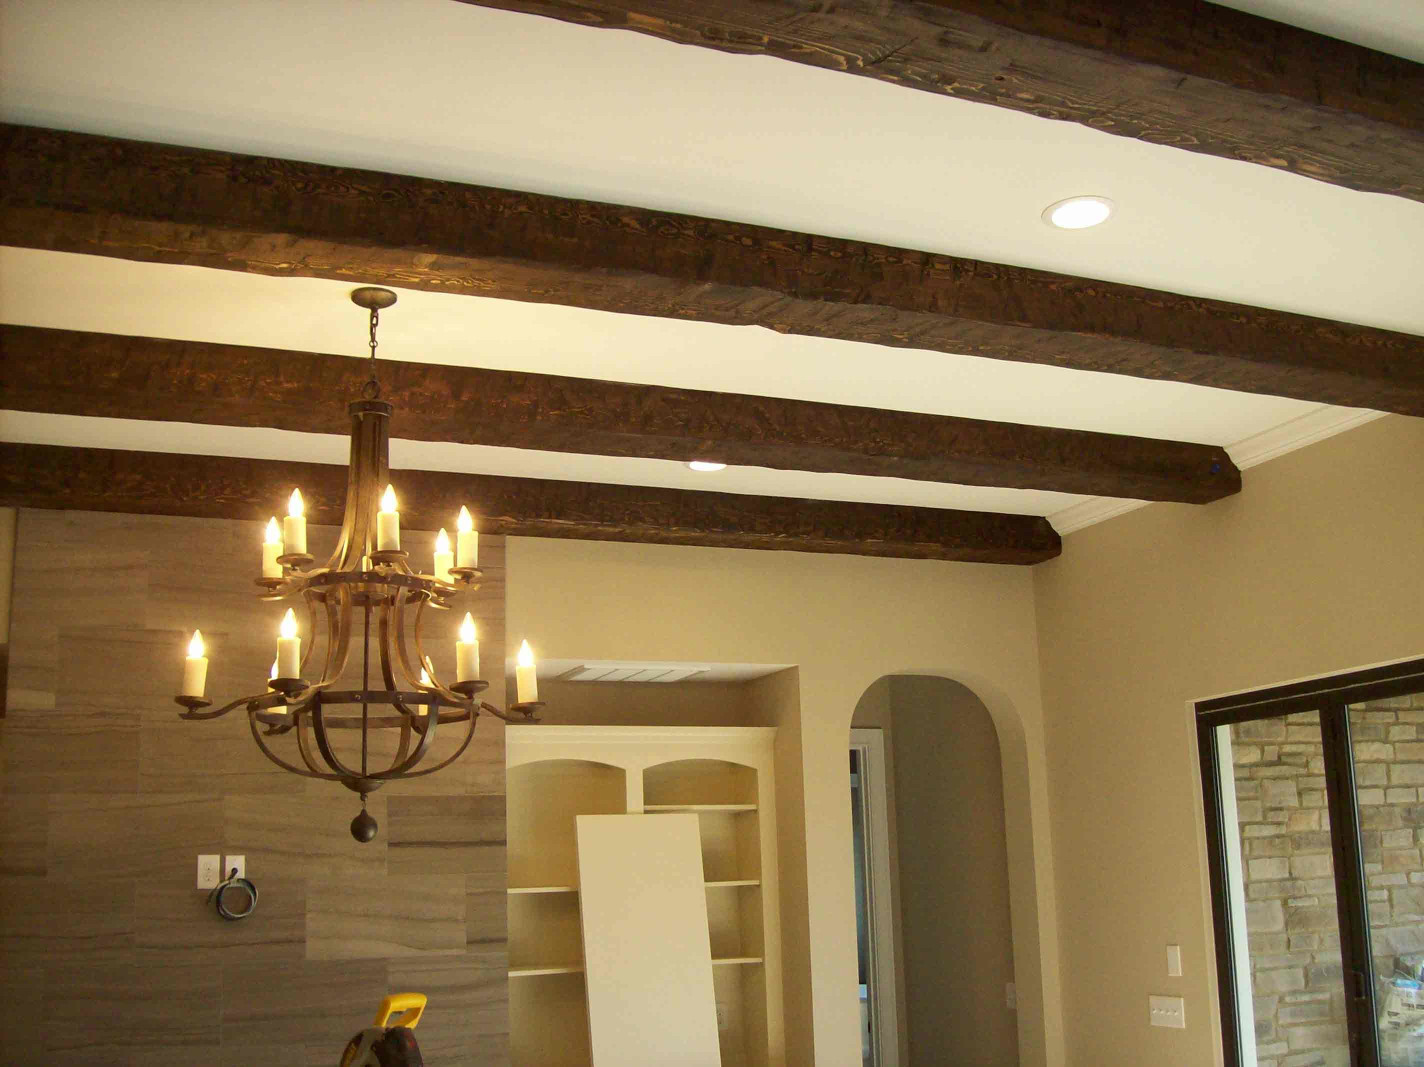 The wood beams on this ceiling give an historic feel to this home.